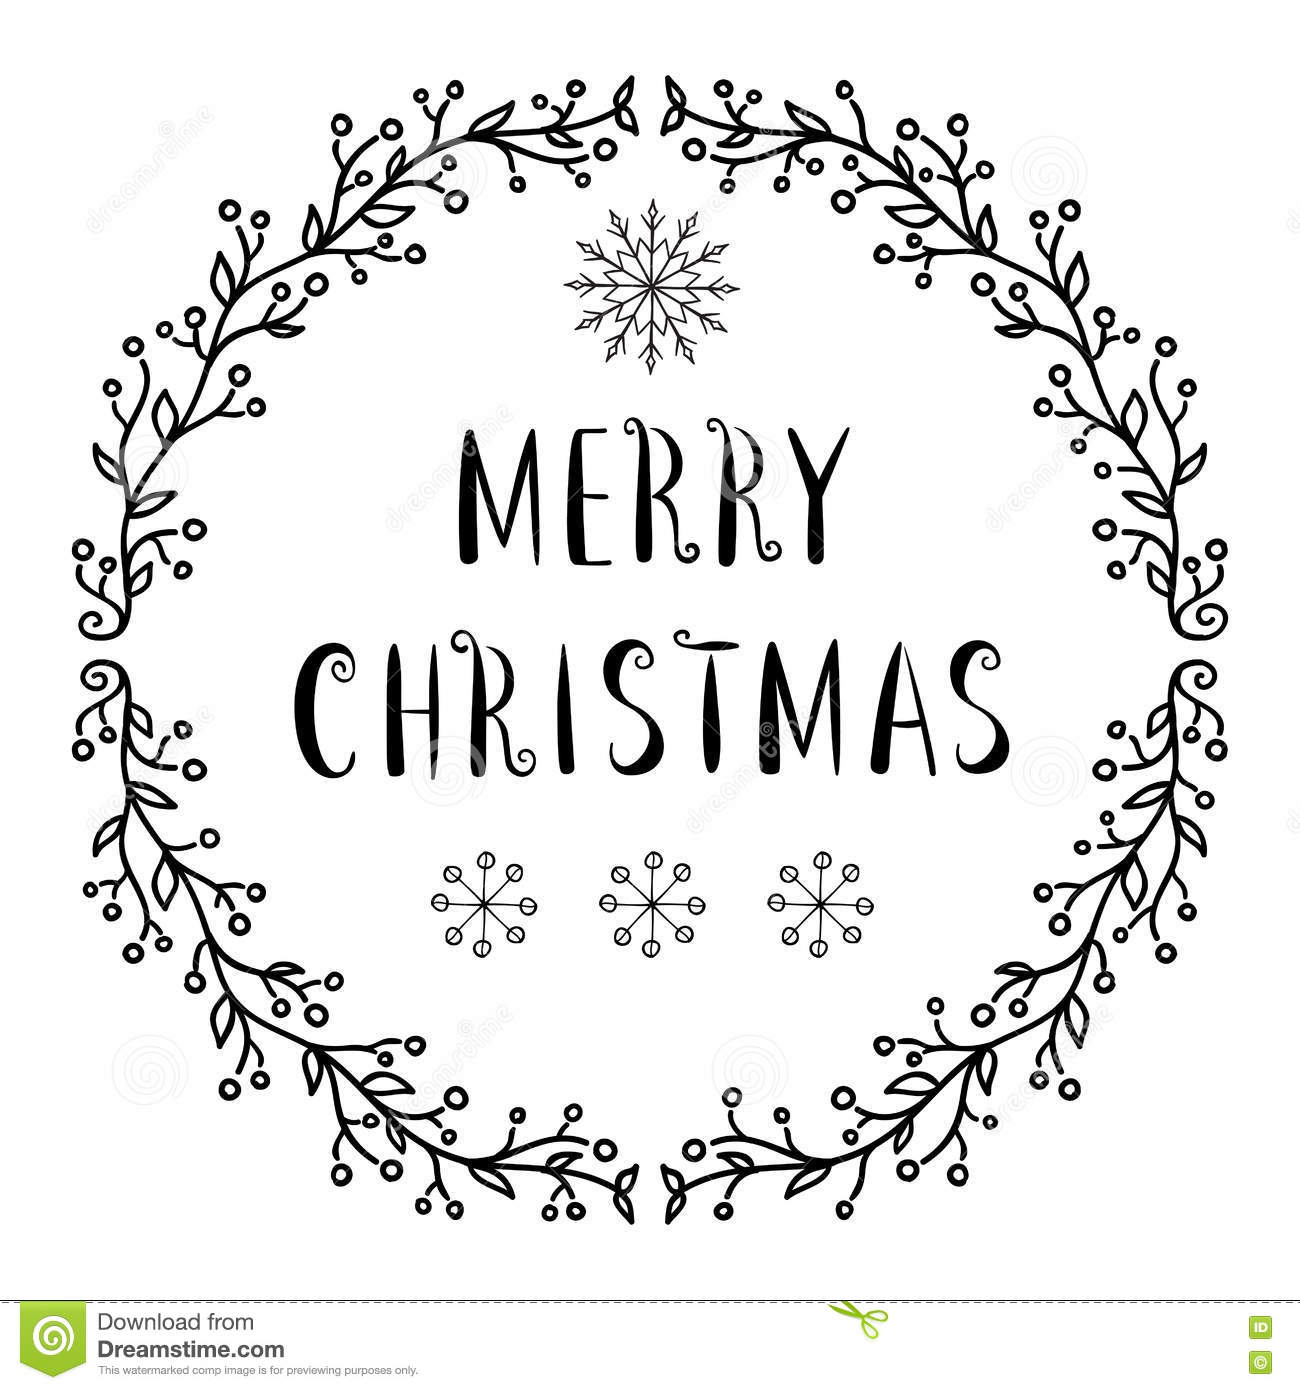 Merry Christmas Text - Lettering Design With Snowflakes Stock Vector ...